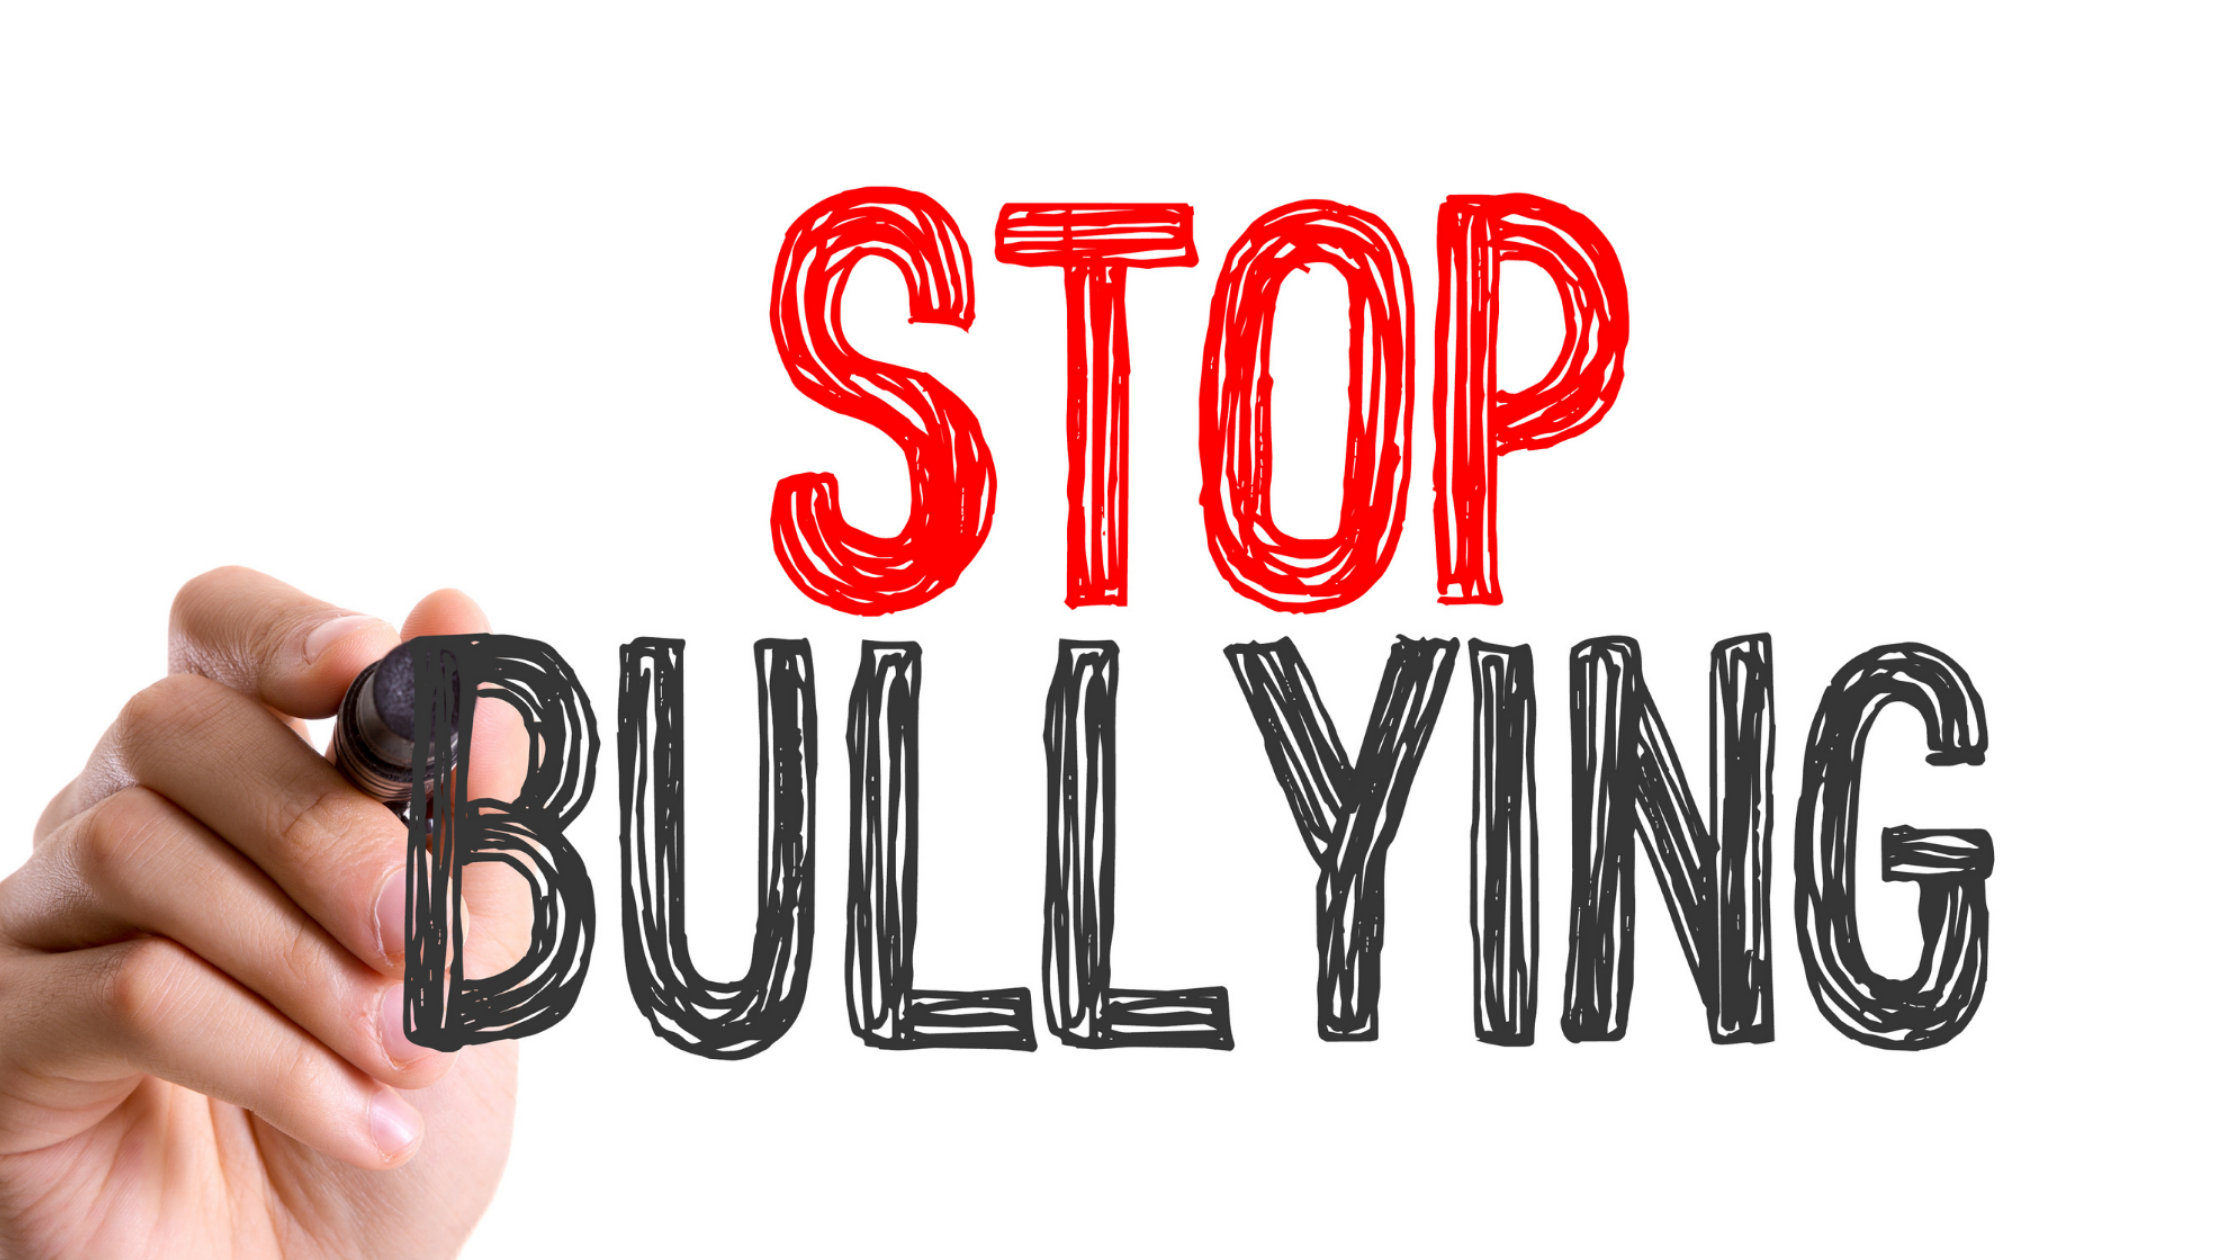 National Anti-Bullying Charity Needs Urgent Assistance